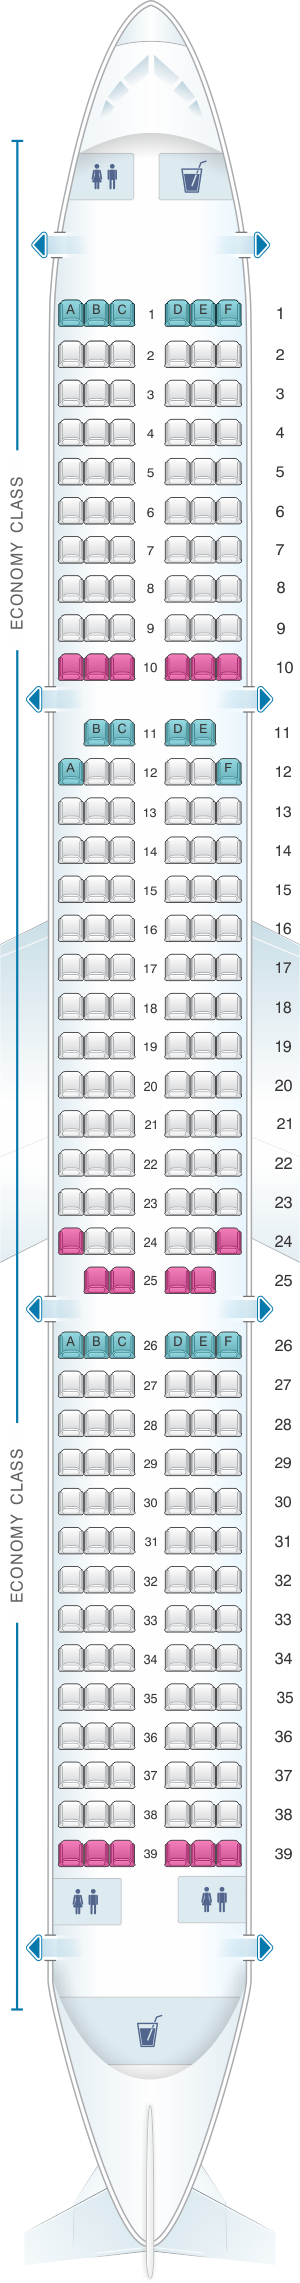 Seat map for Wizz Air Airbus A321